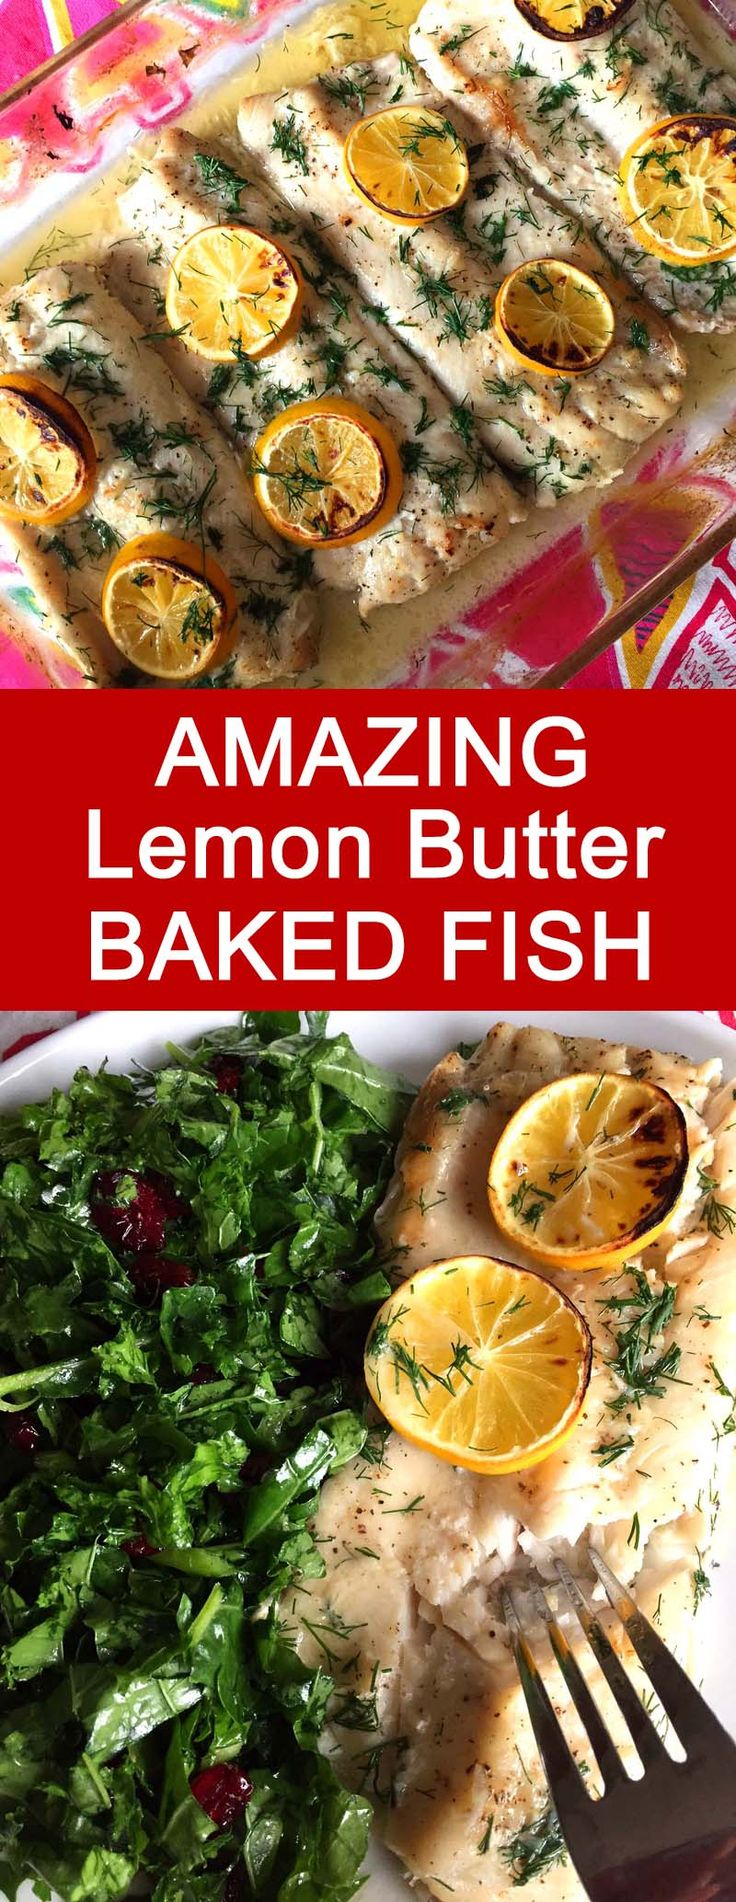 Best 25 white fish recipes ideas on pinterest whiting for How to bake whiting fish